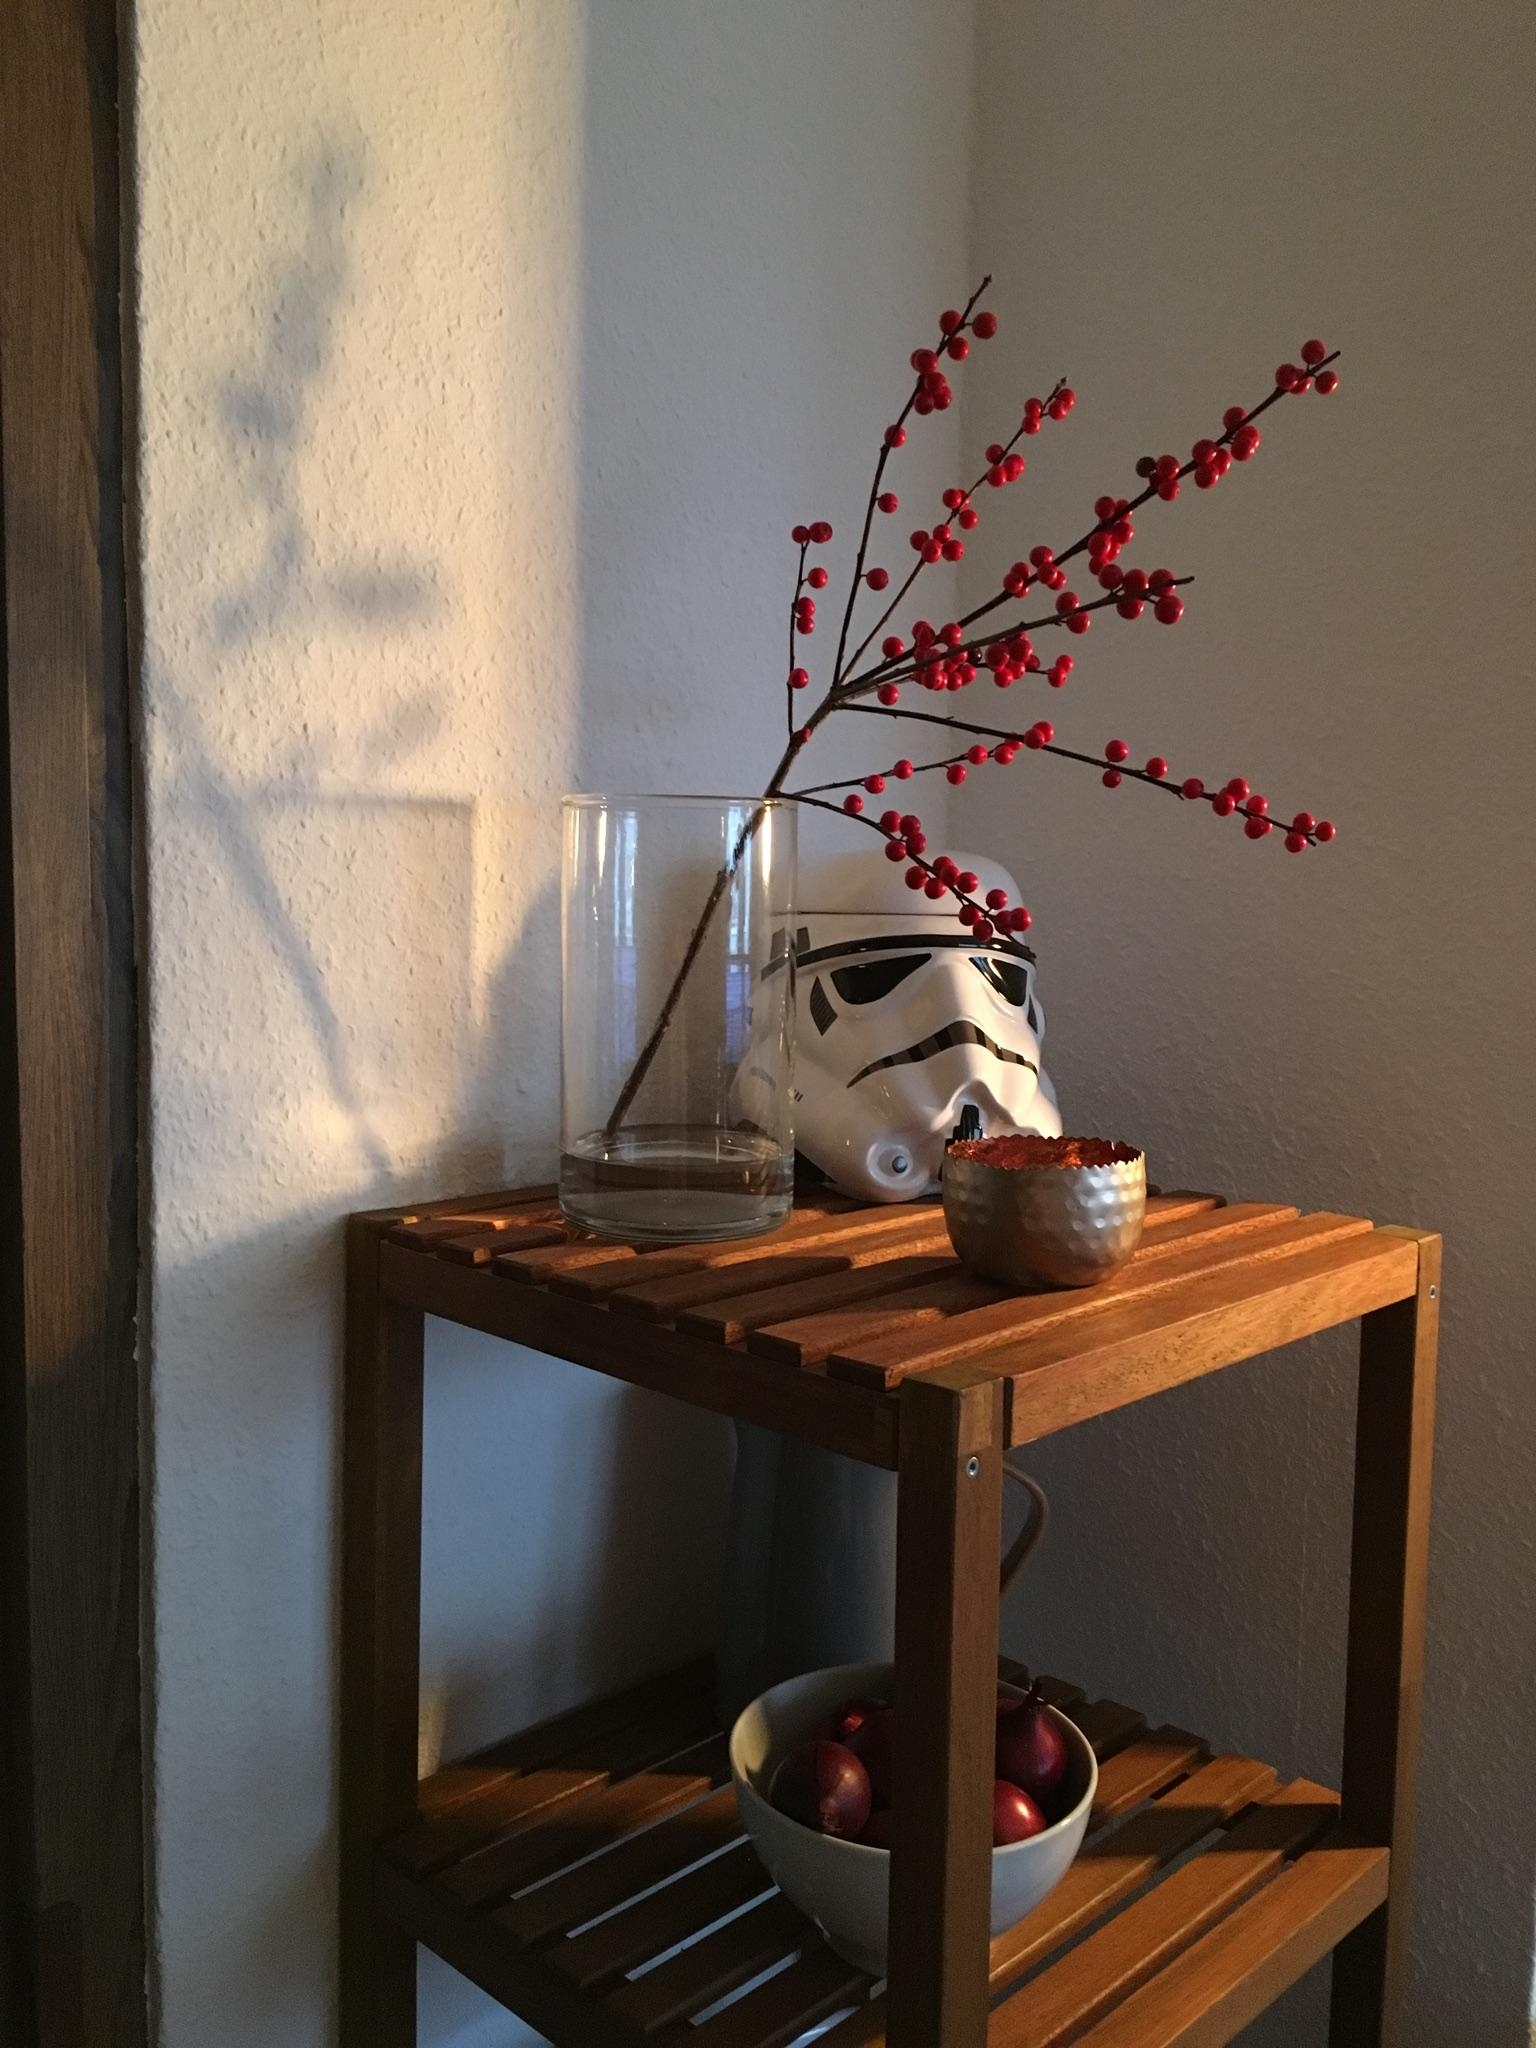 #küche #ilex #minimalism #kitchen #light #sonnenstrahlen #starwars #stormtrooper #scandi #winter #nordic #hej #hygge